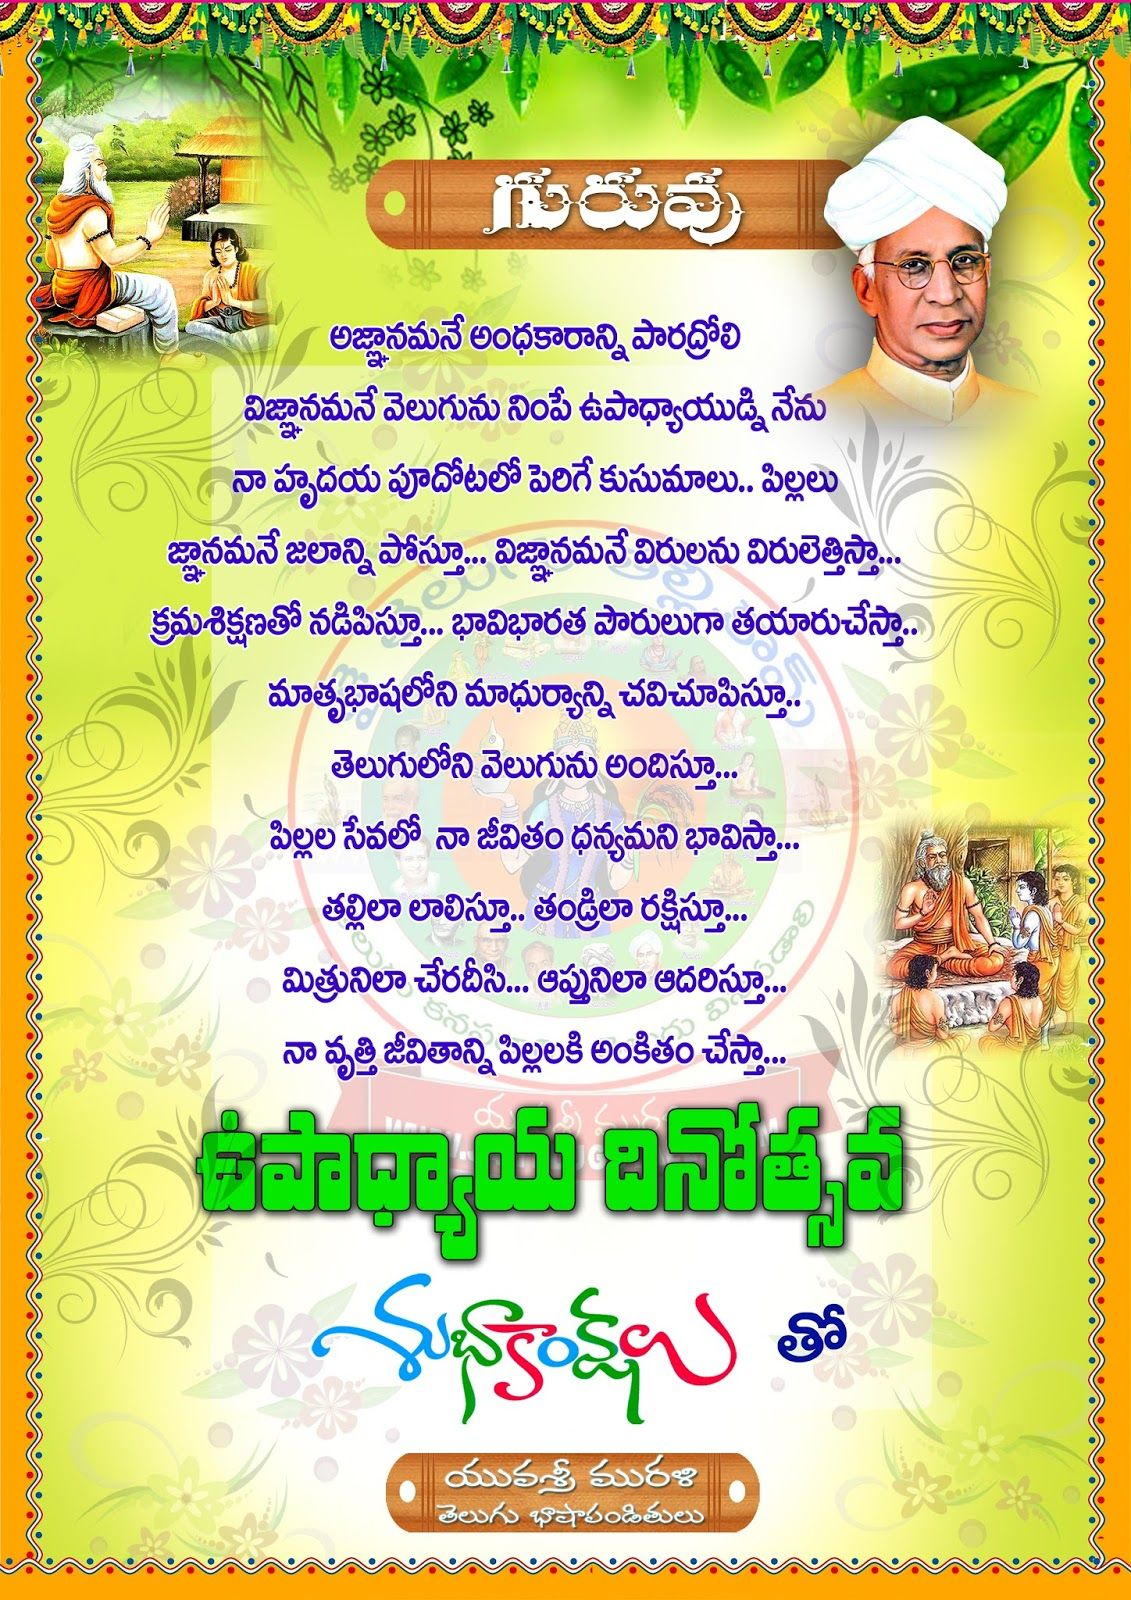 Telugu Kavithalu Images Happy Teachers Day Wishes In Telugu Pictures Messages Online Www Jait Teachers Day Wishes Teachers Day Card Happy Teachers Day Wishes